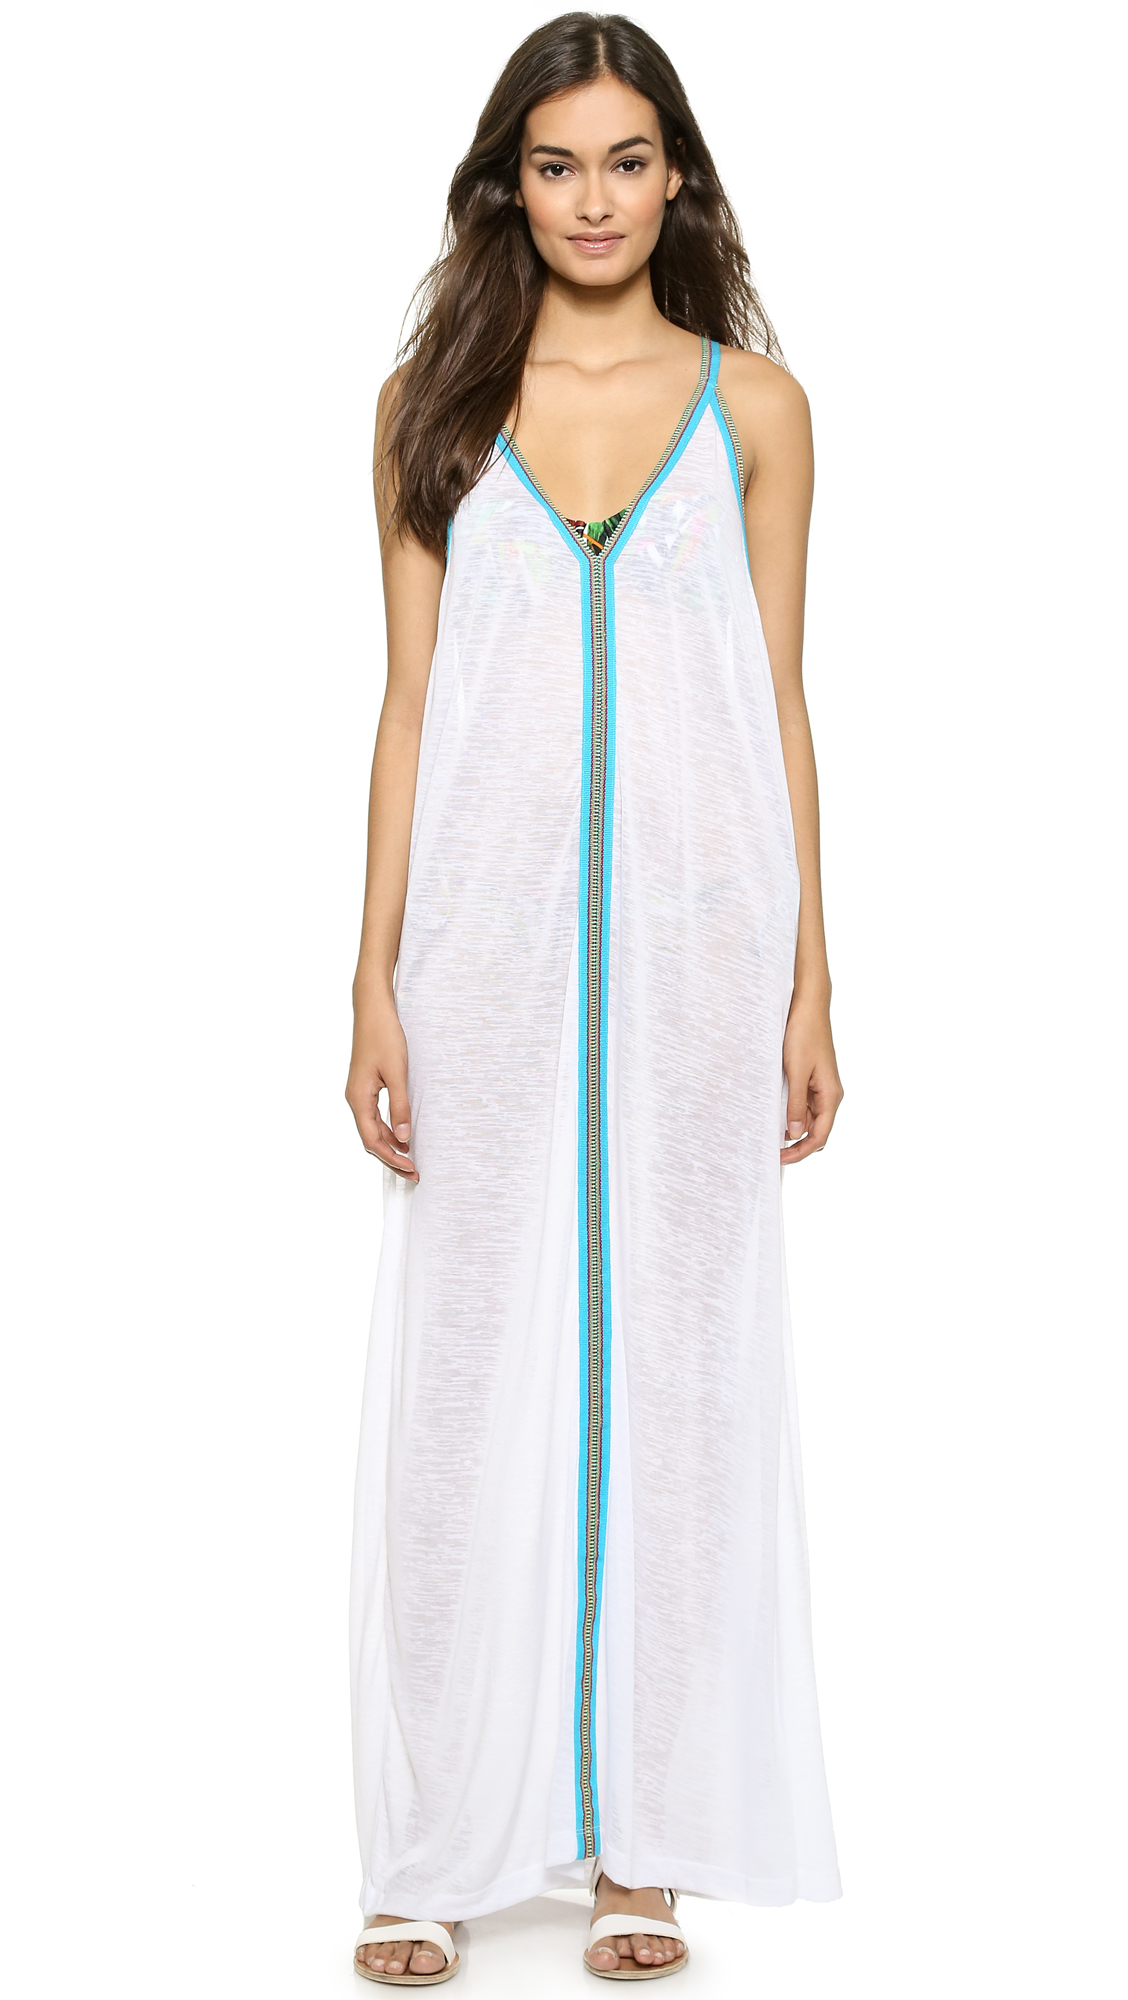 Pitusa Sun Maxi Dress - White